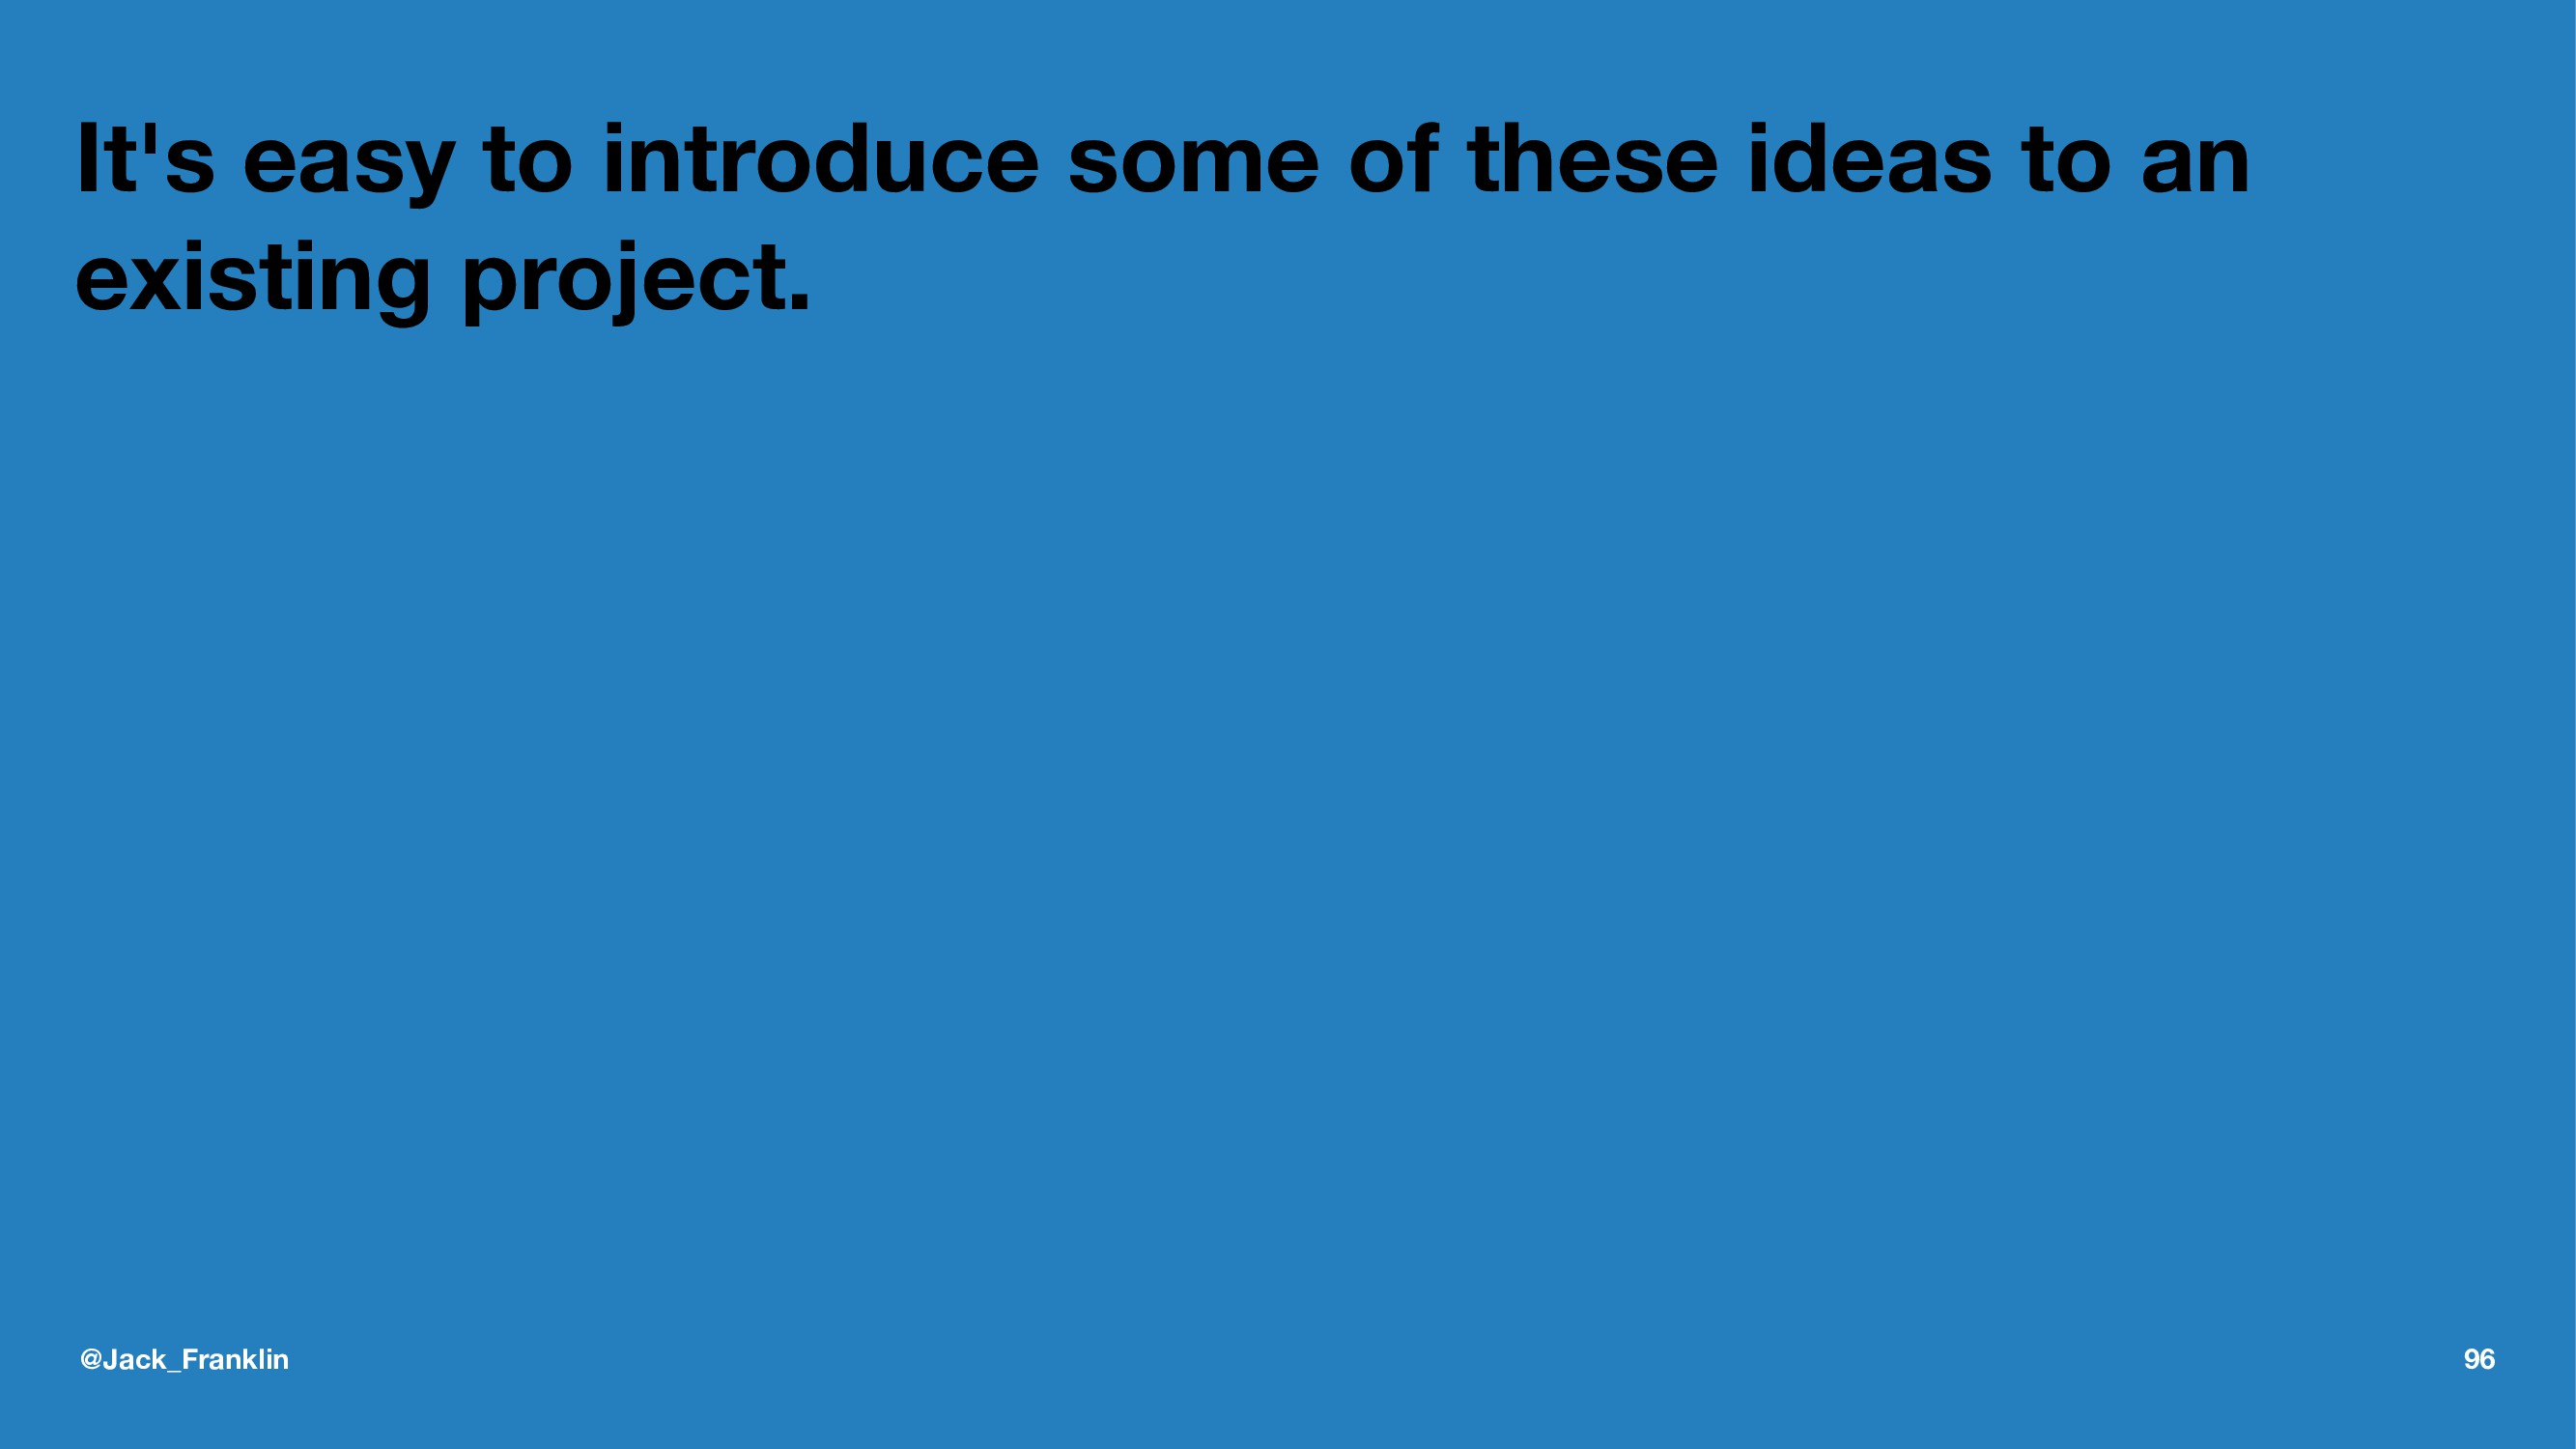 It's easy to introduce some of these ideas to a...